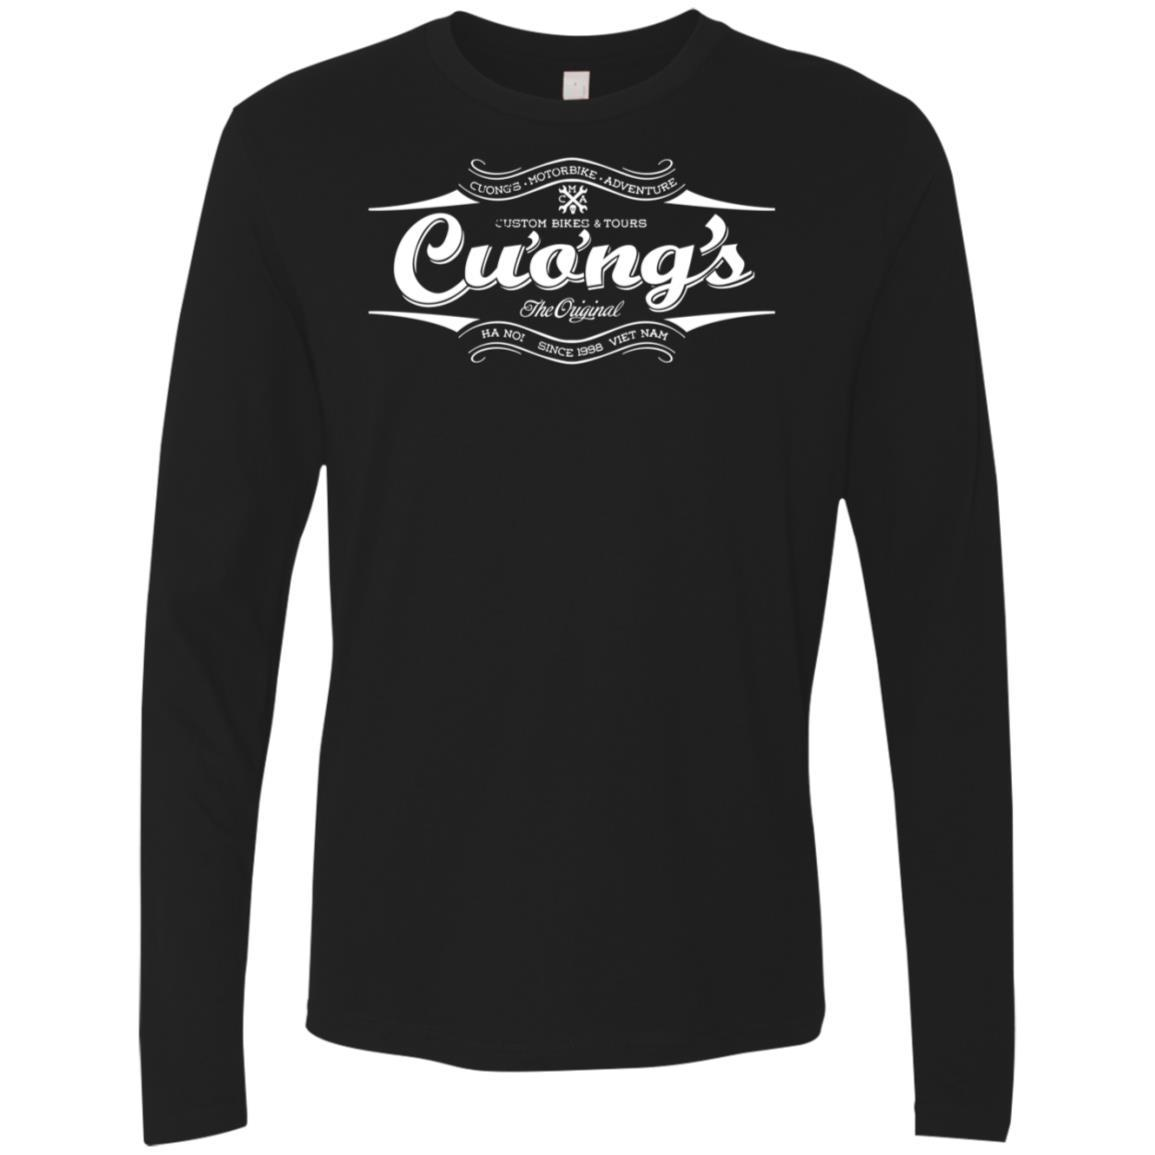 Cuongs Premium Long Sleeve